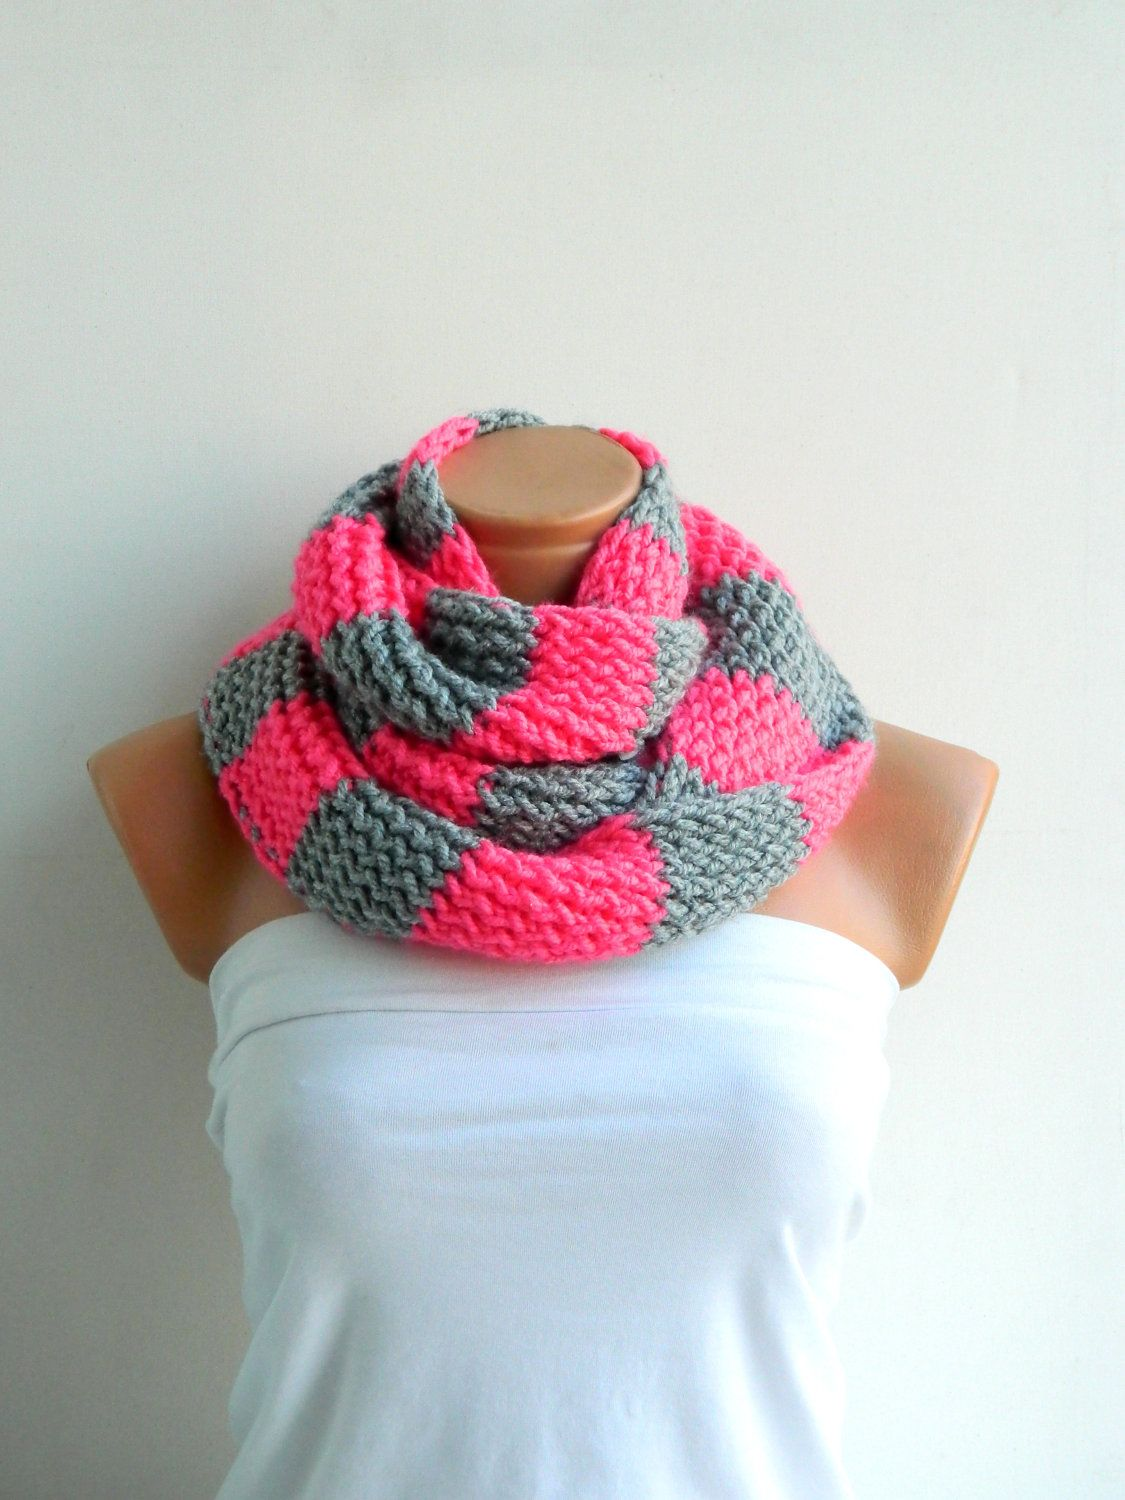 Candy pink infinity scarfhand knit striped gray and pink hand candy pink infinity scarfhand knit striped gray and pink hand knitt infinity scarf block bankloansurffo Choice Image